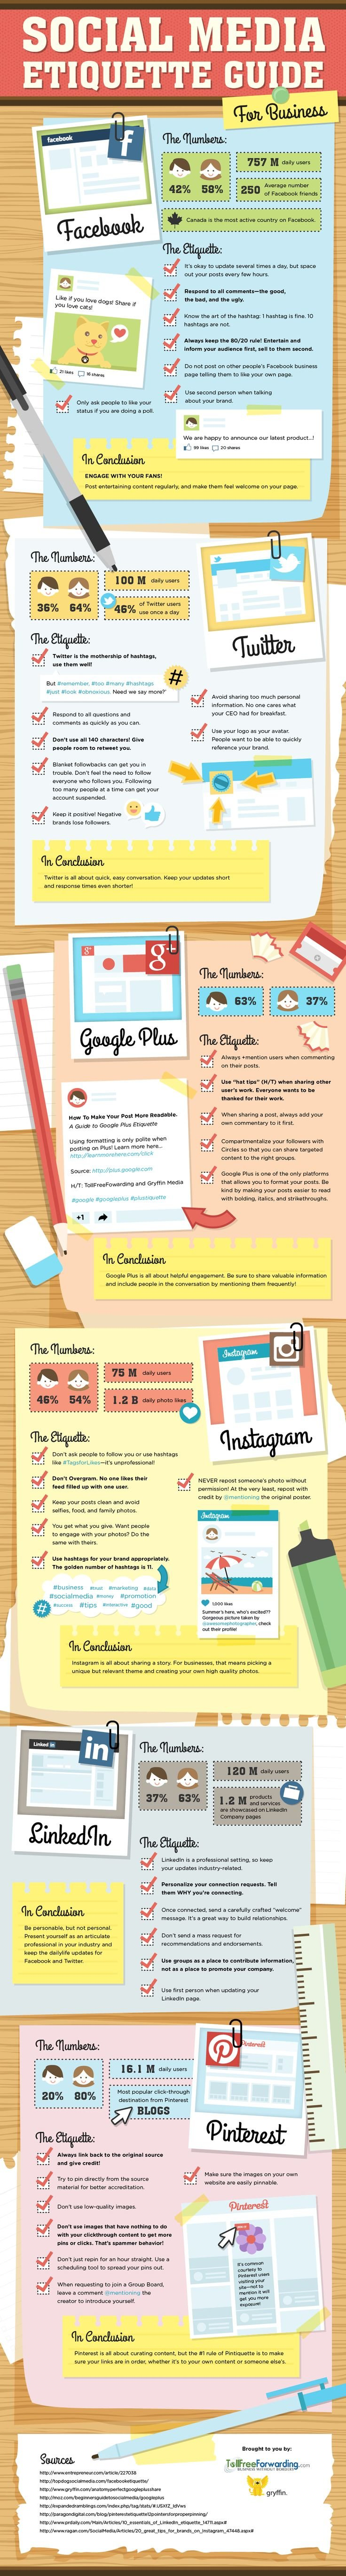 Social Media Etiquette Guide for Business #infographic